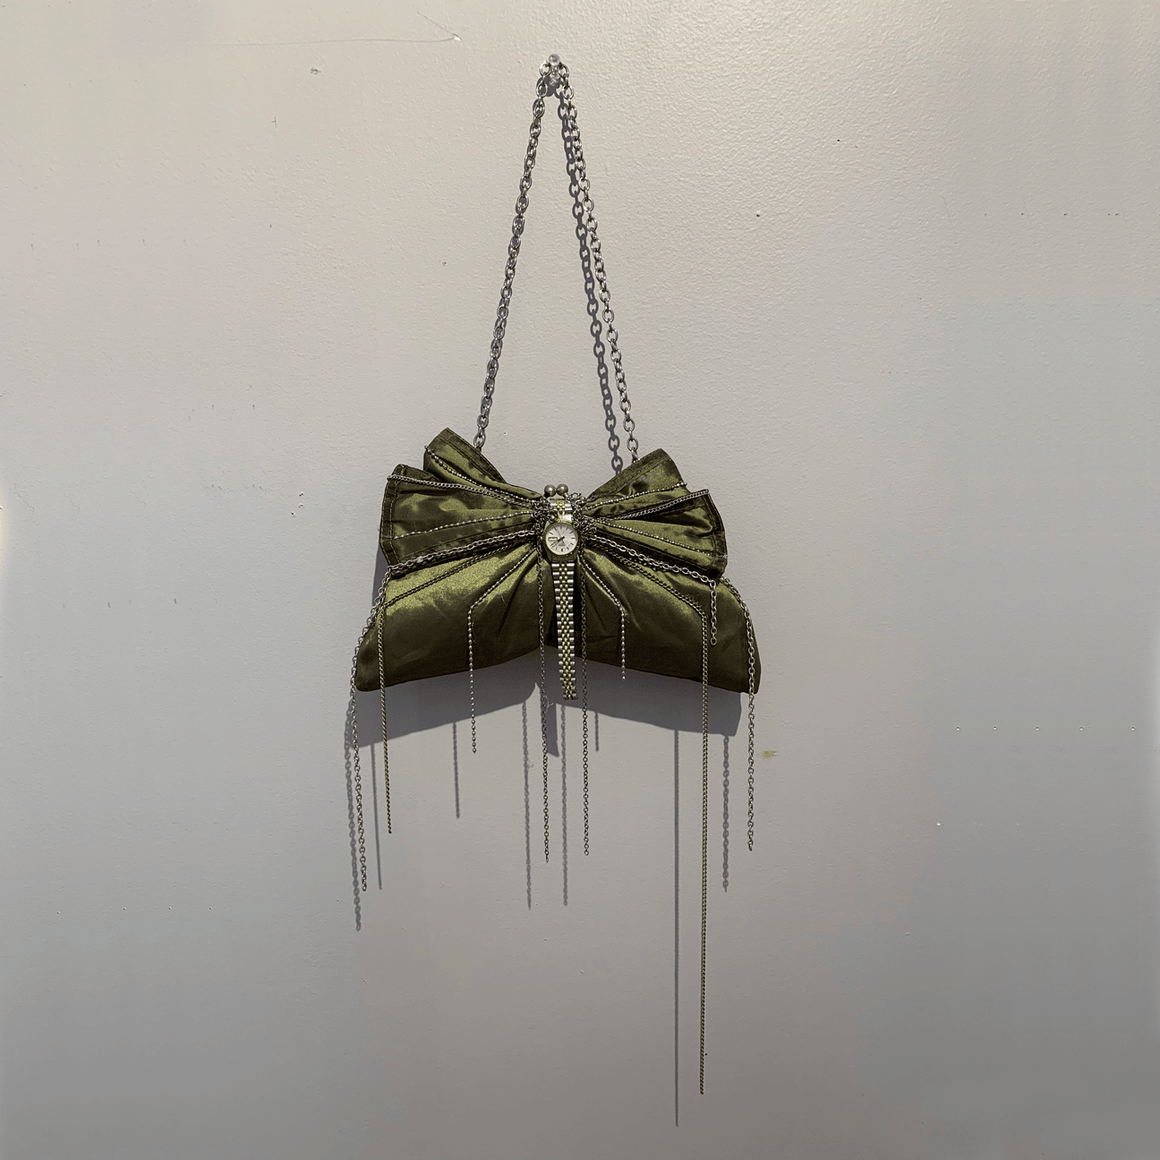 Monica Ciopettini Bow Bag (2020) - Monica Cioppettini